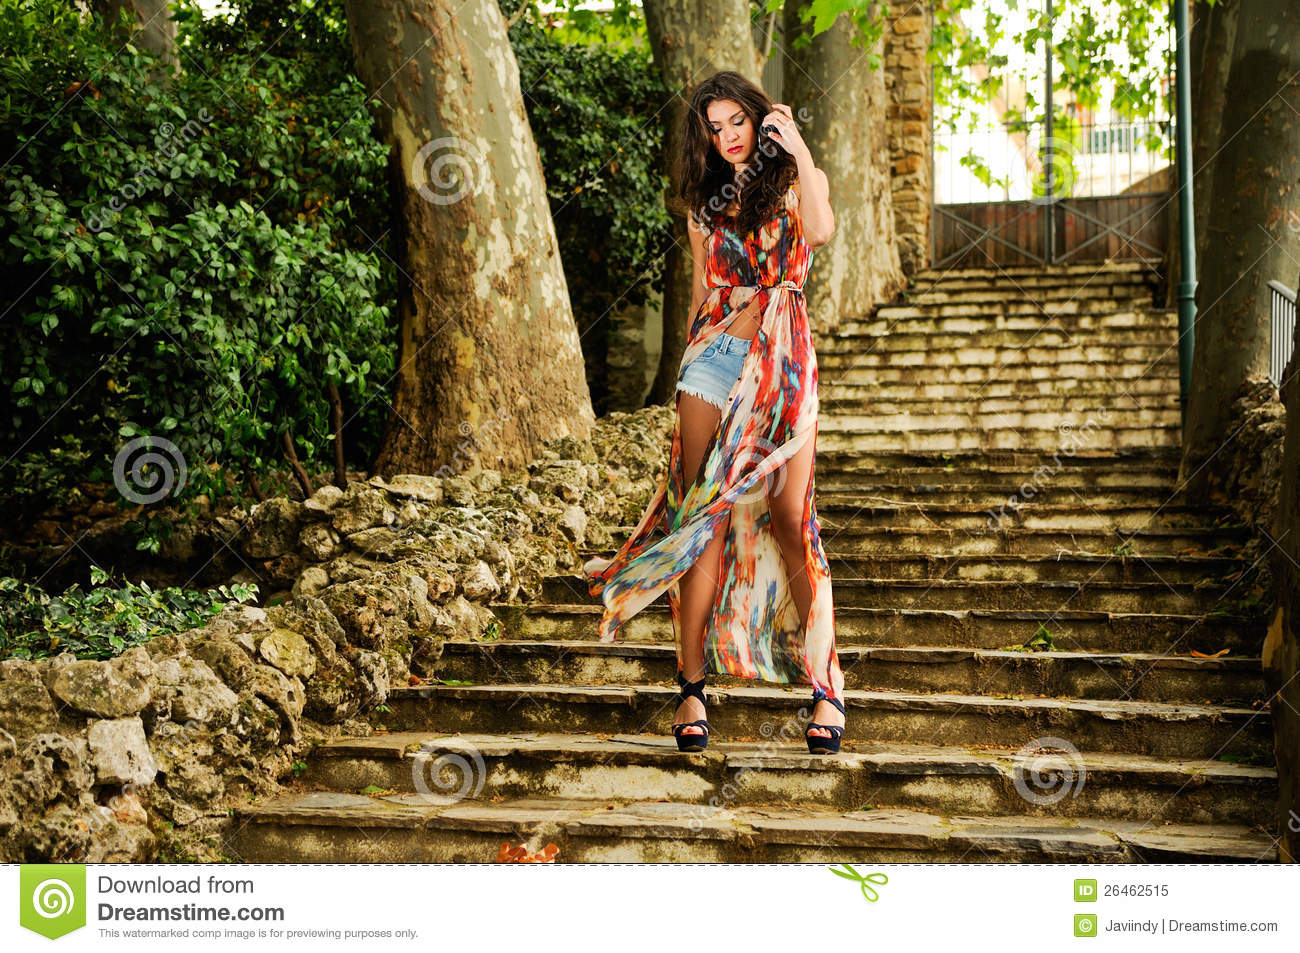 Young woman, model of fashion, in a garden stairs